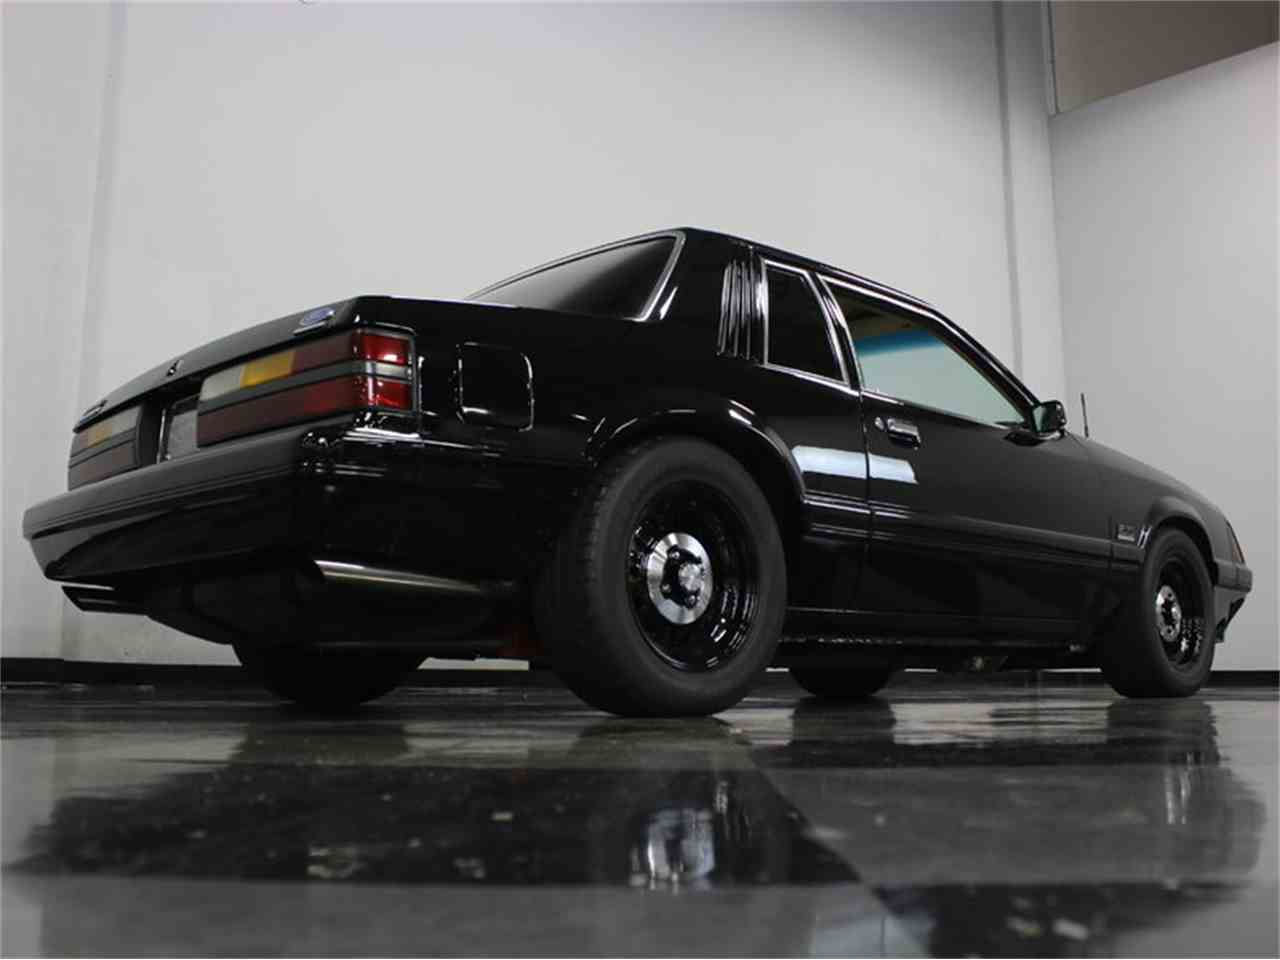 Large Picture of '86 Ford Mustang SSP Interceptor located in Texas Offered by Streetside Classics - Dallas / Fort Worth - JZNT